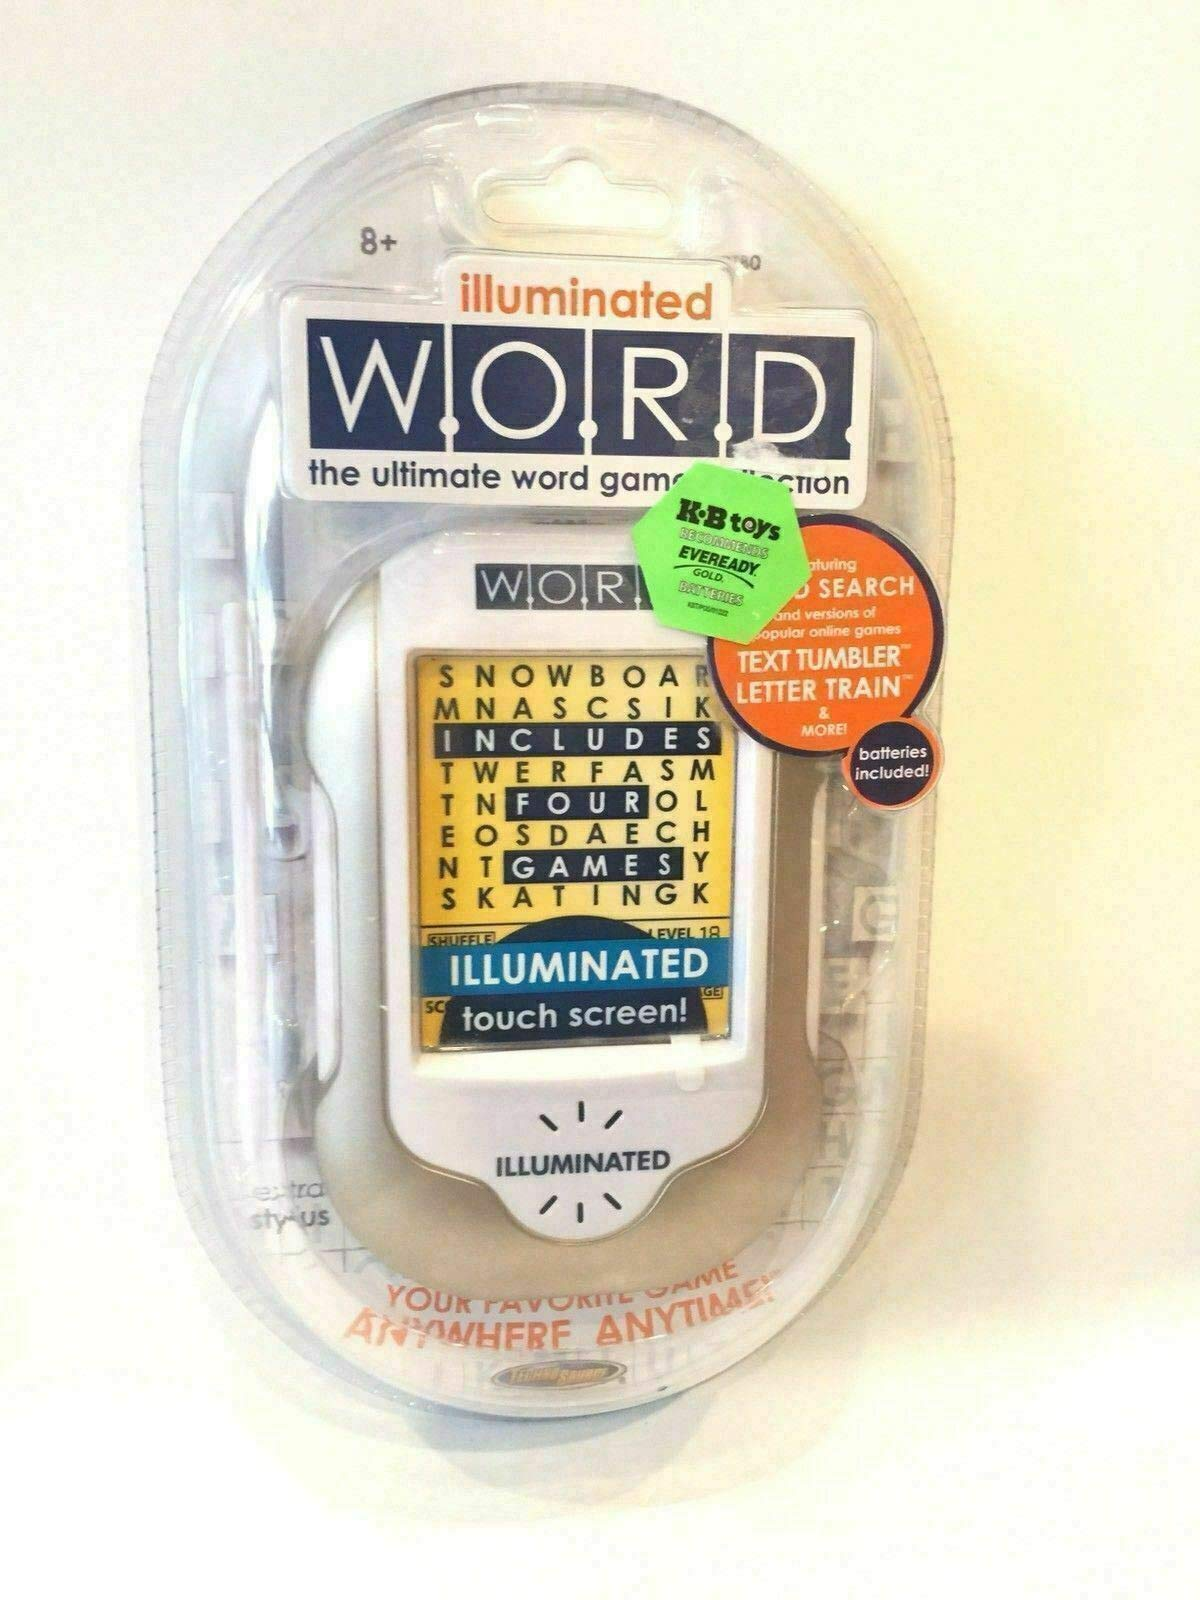 Illuminated Word The Ultimate Word Game Collection Rare Pocket Travel Stylus NEW by Generic (Image #5)